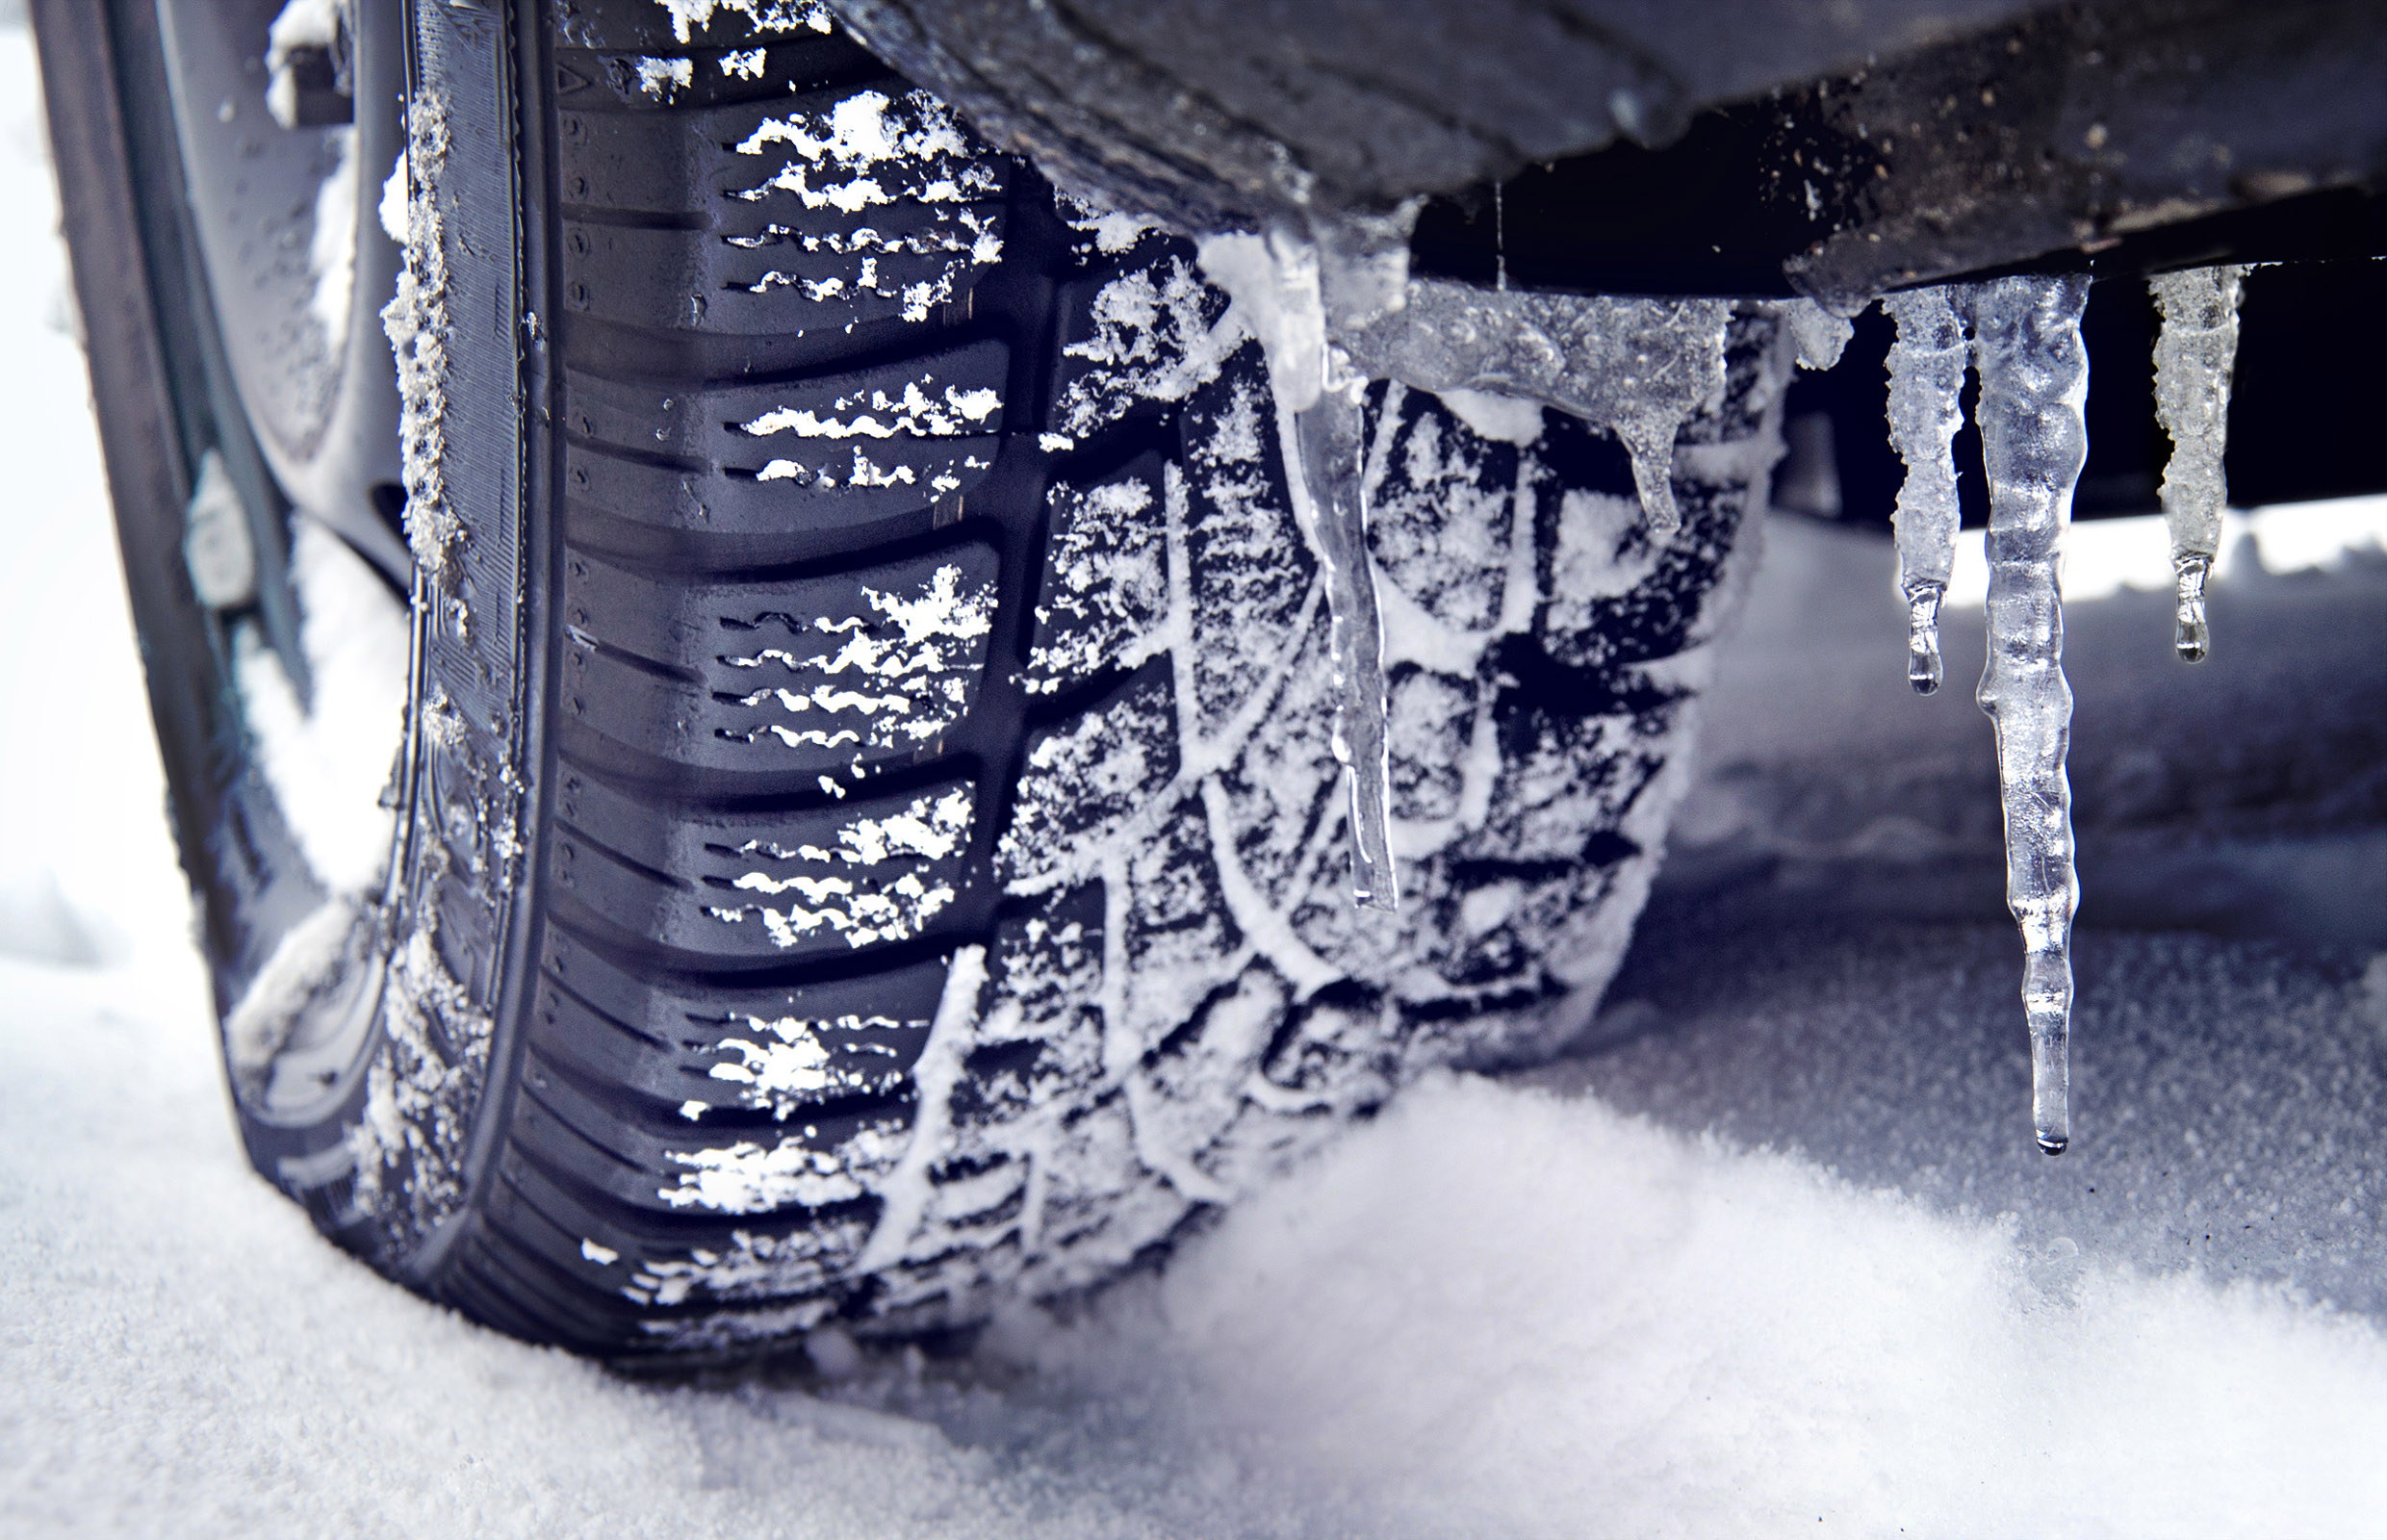 When to change the tires to winter tires